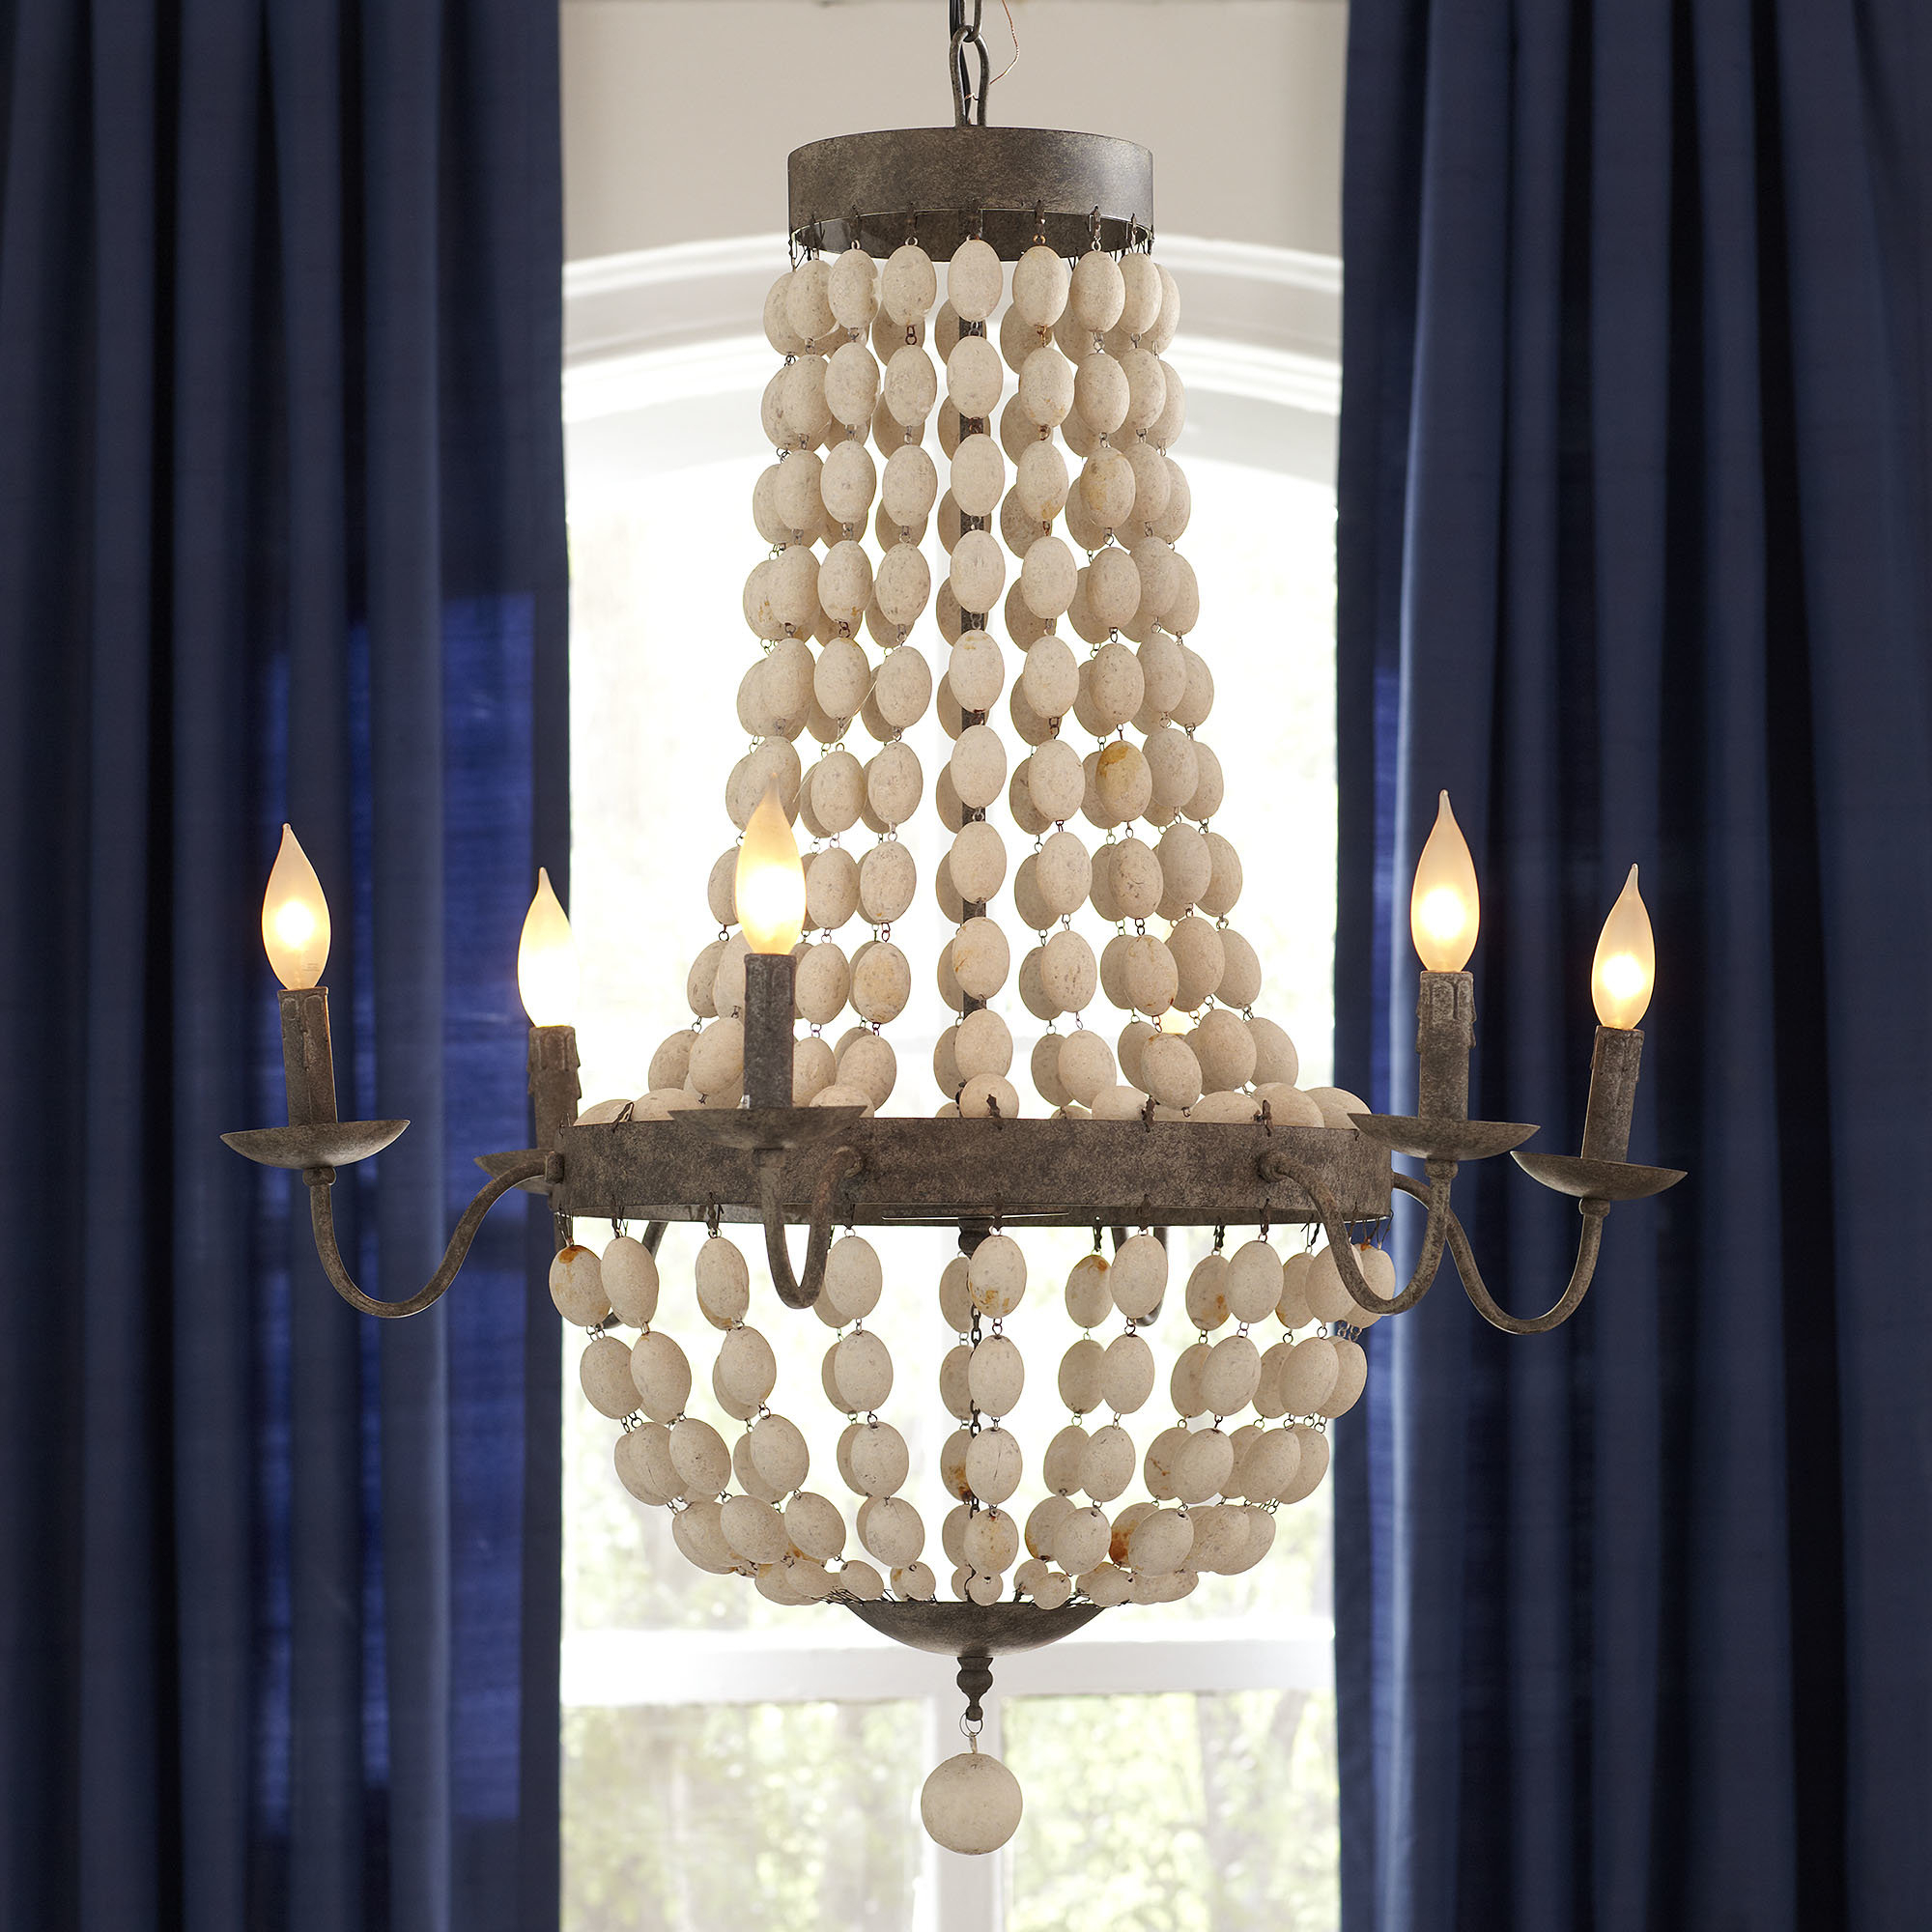 Bargas 6 Light Empire Chandelier In Most Up To Date Duron 5 Light Empire Chandeliers (View 14 of 20)